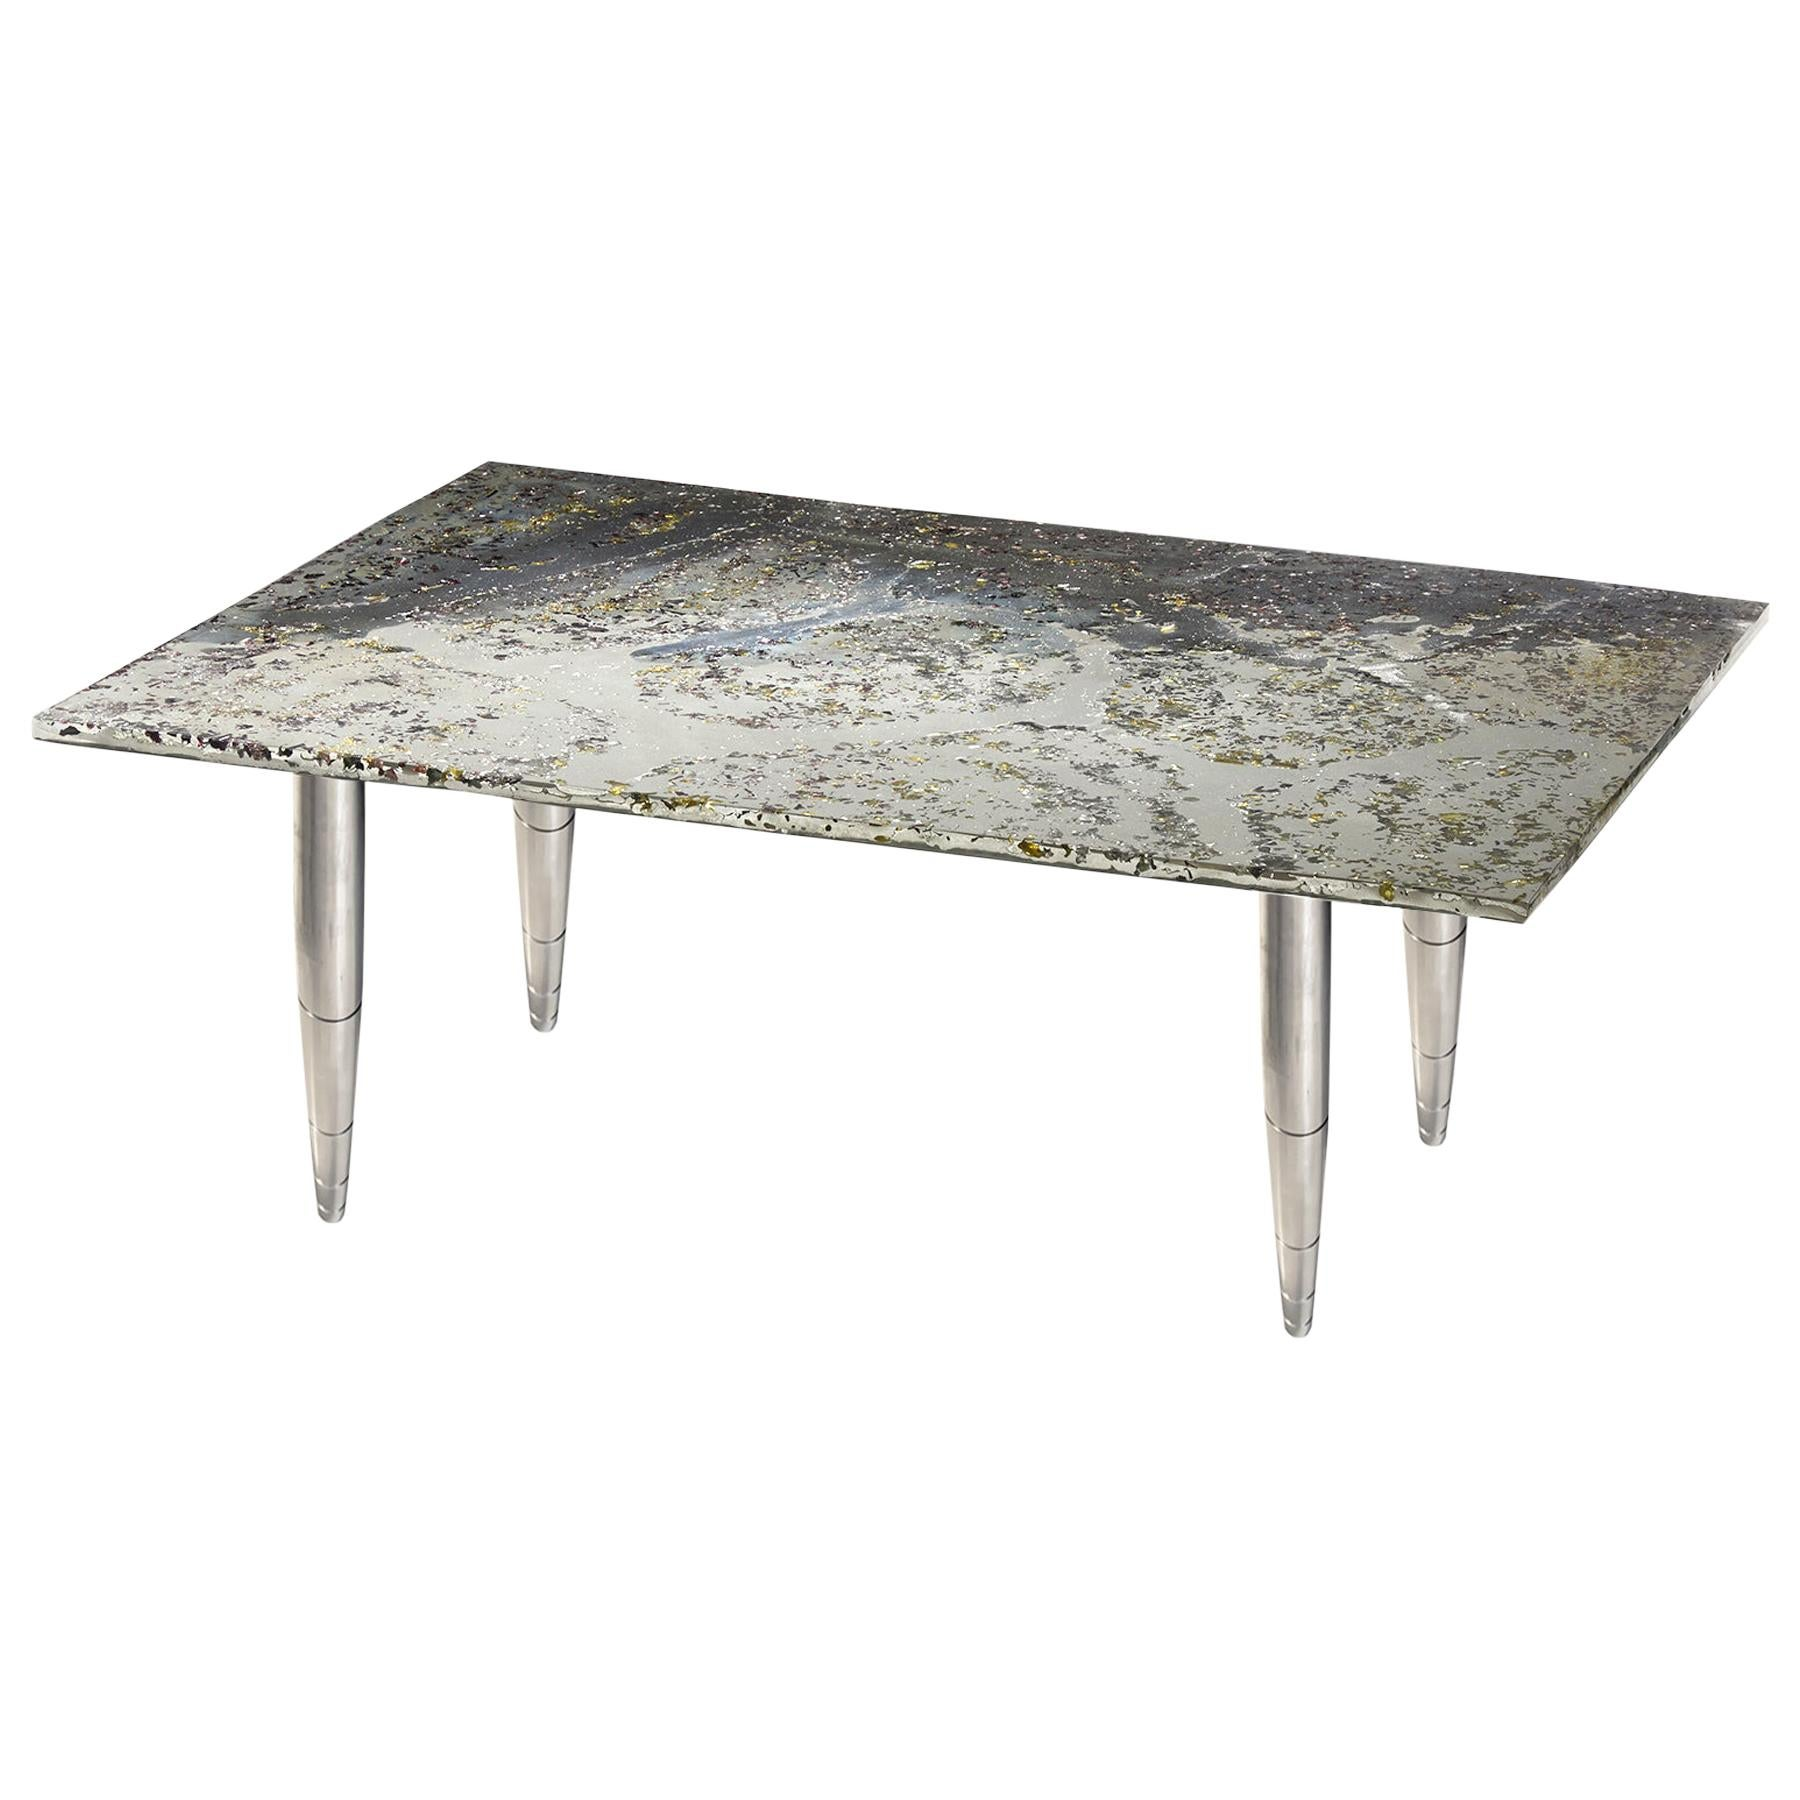 coffee table pluto planet melted pewter murano glass crystal resin